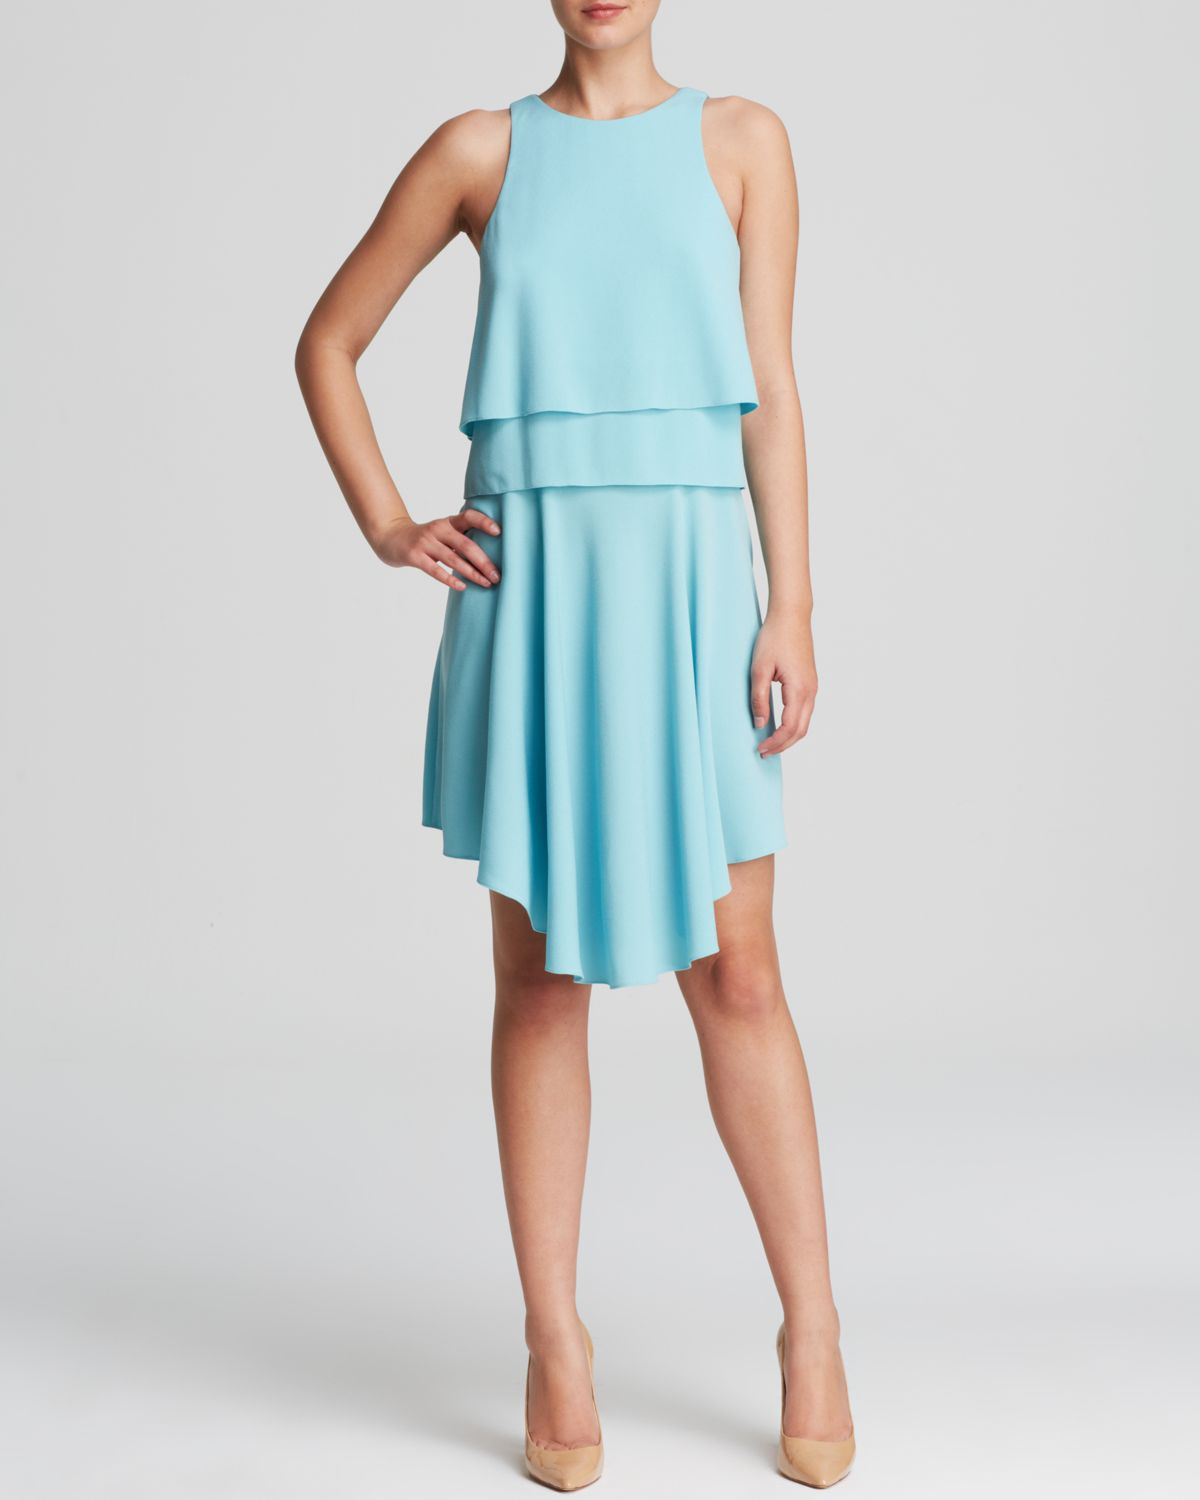 Tibi Dress - Savanna Crepe Double Layer in Blue | Lyst